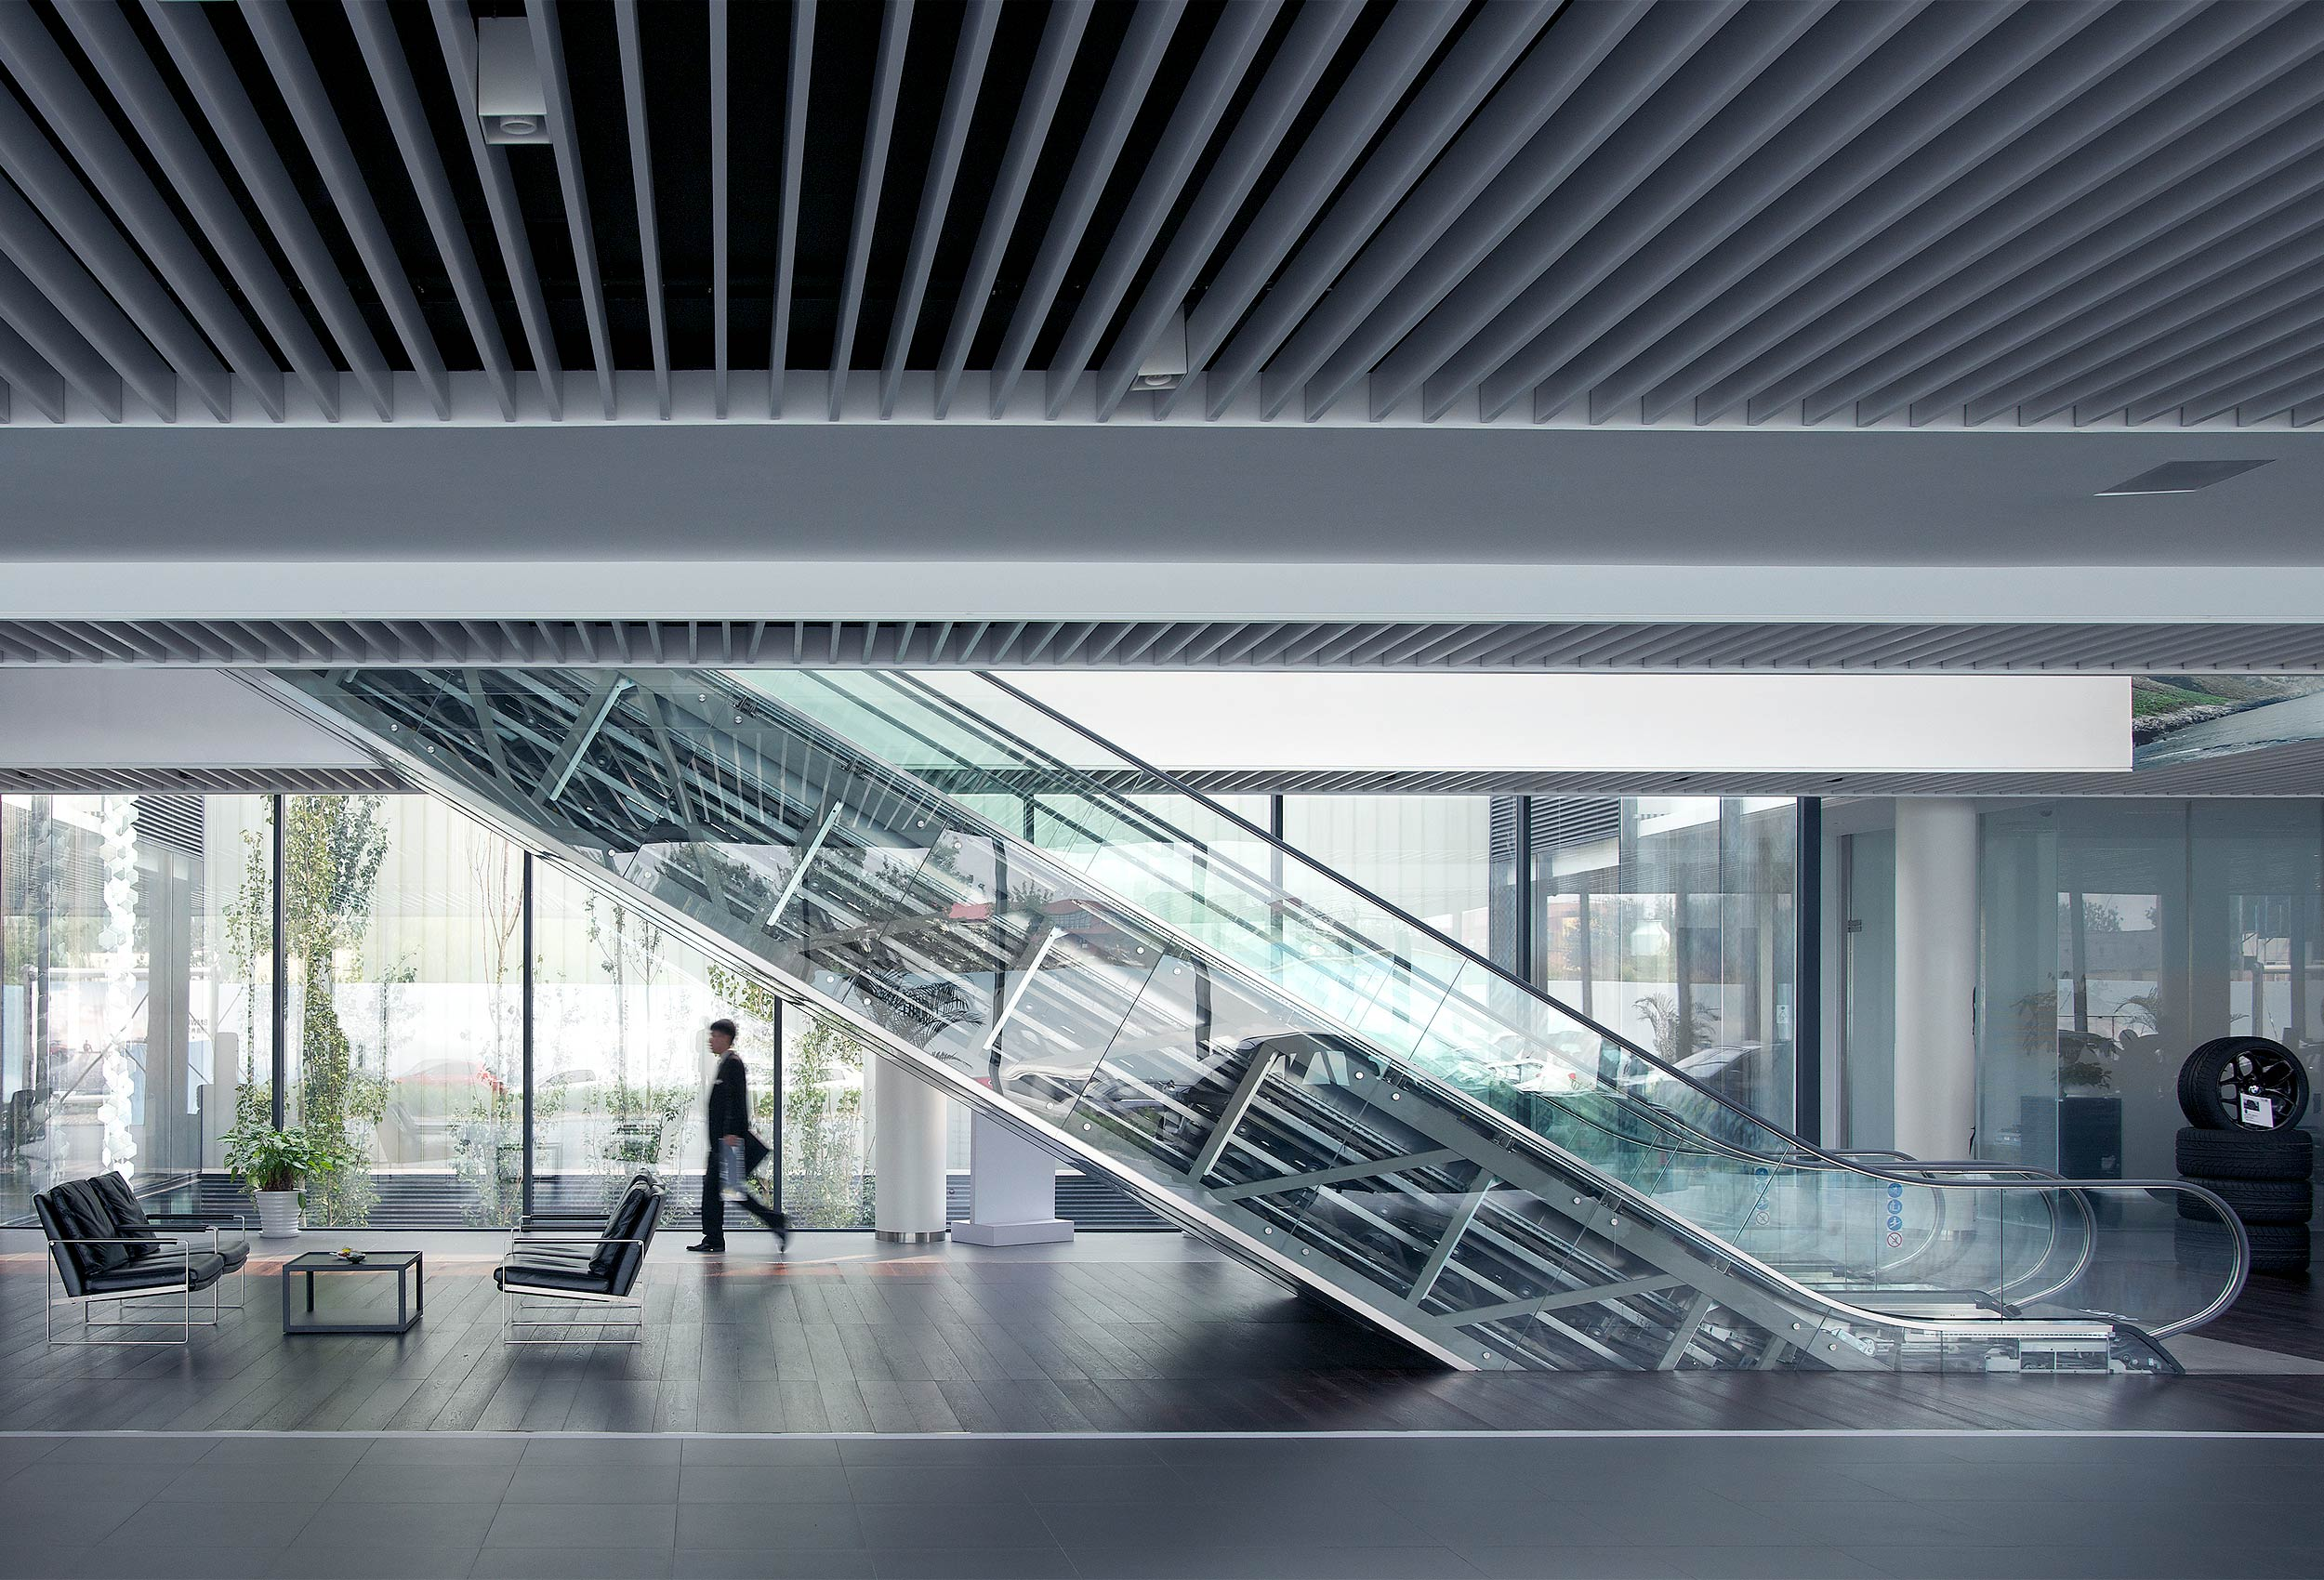 BMW HQ by architectural photographer Kristopher Grunert